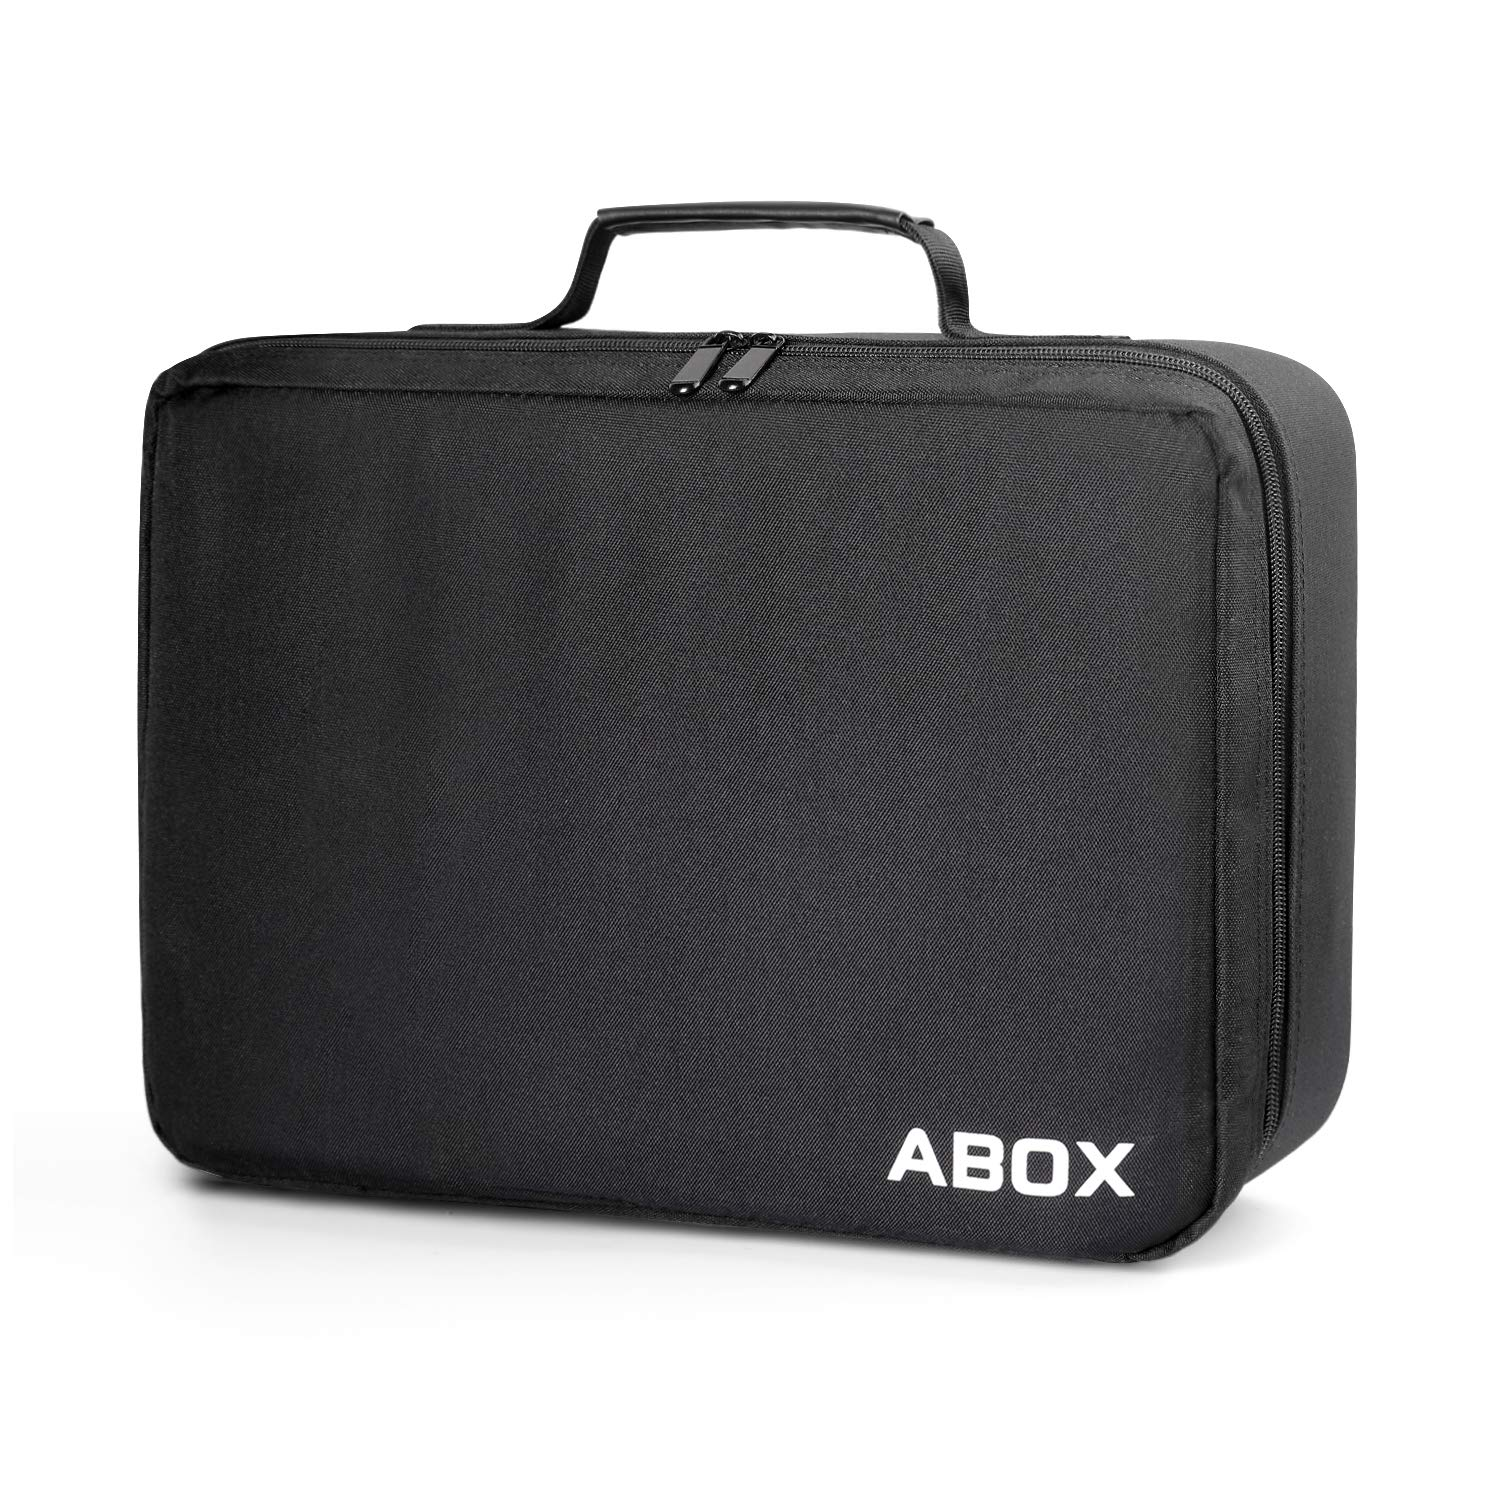 ABOX Carrying Bag fits ABOX A6 4000 Lumens LCD Full HD Multimedia Home Theater Video Projector-Dust Proof & Waterproof,Scratch-Resistant by GooBang Doo (Image #1)